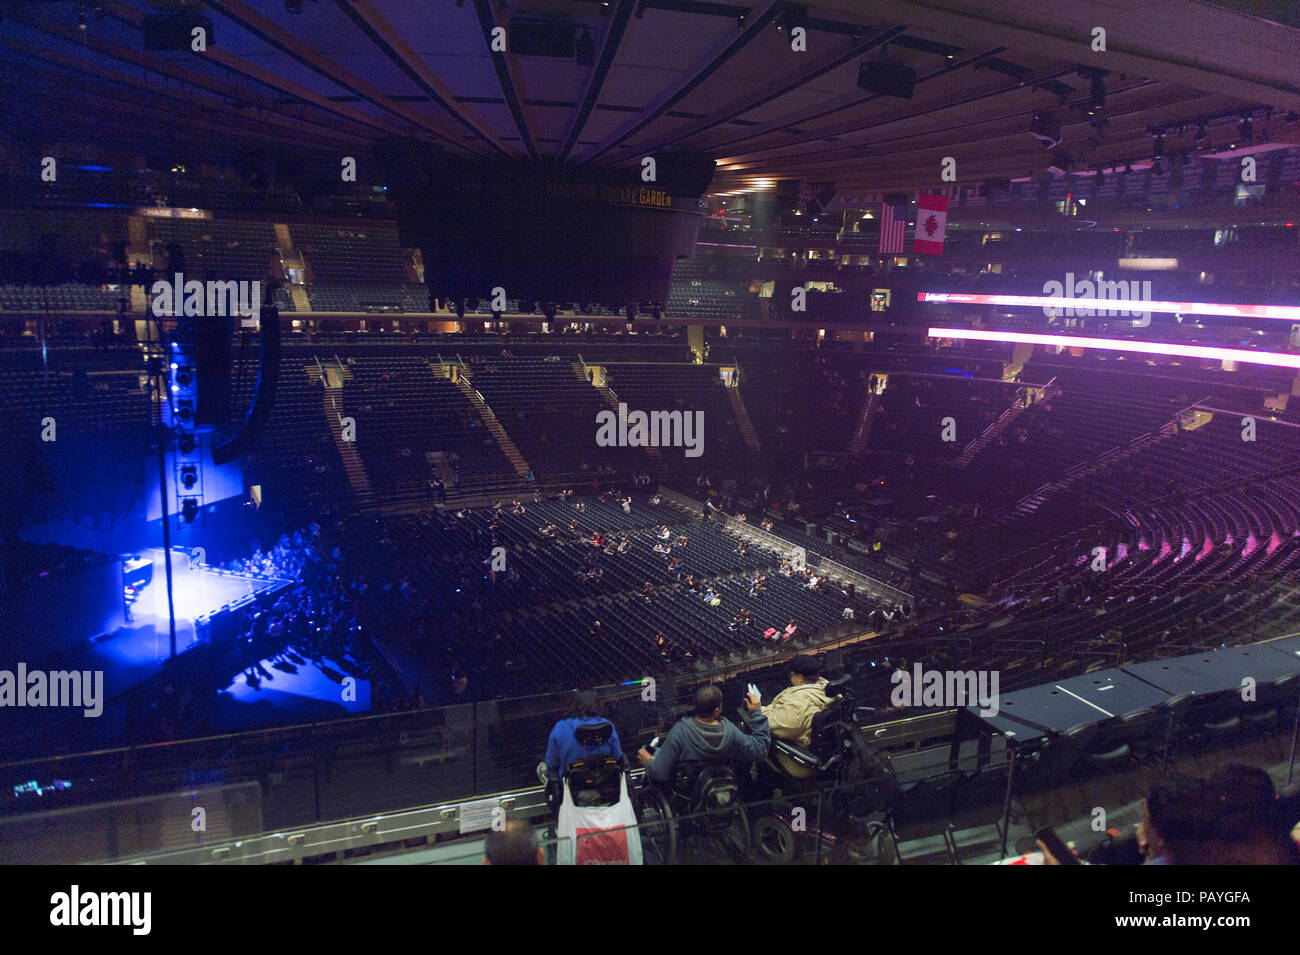 Lovely NEW YORK, USA   OCT 8, 2015: Madison Square Garden, New York City. MSG Is  The Arena For Basketball, Ice Hockey, Pro Wrestling, Concerts And Boxing.